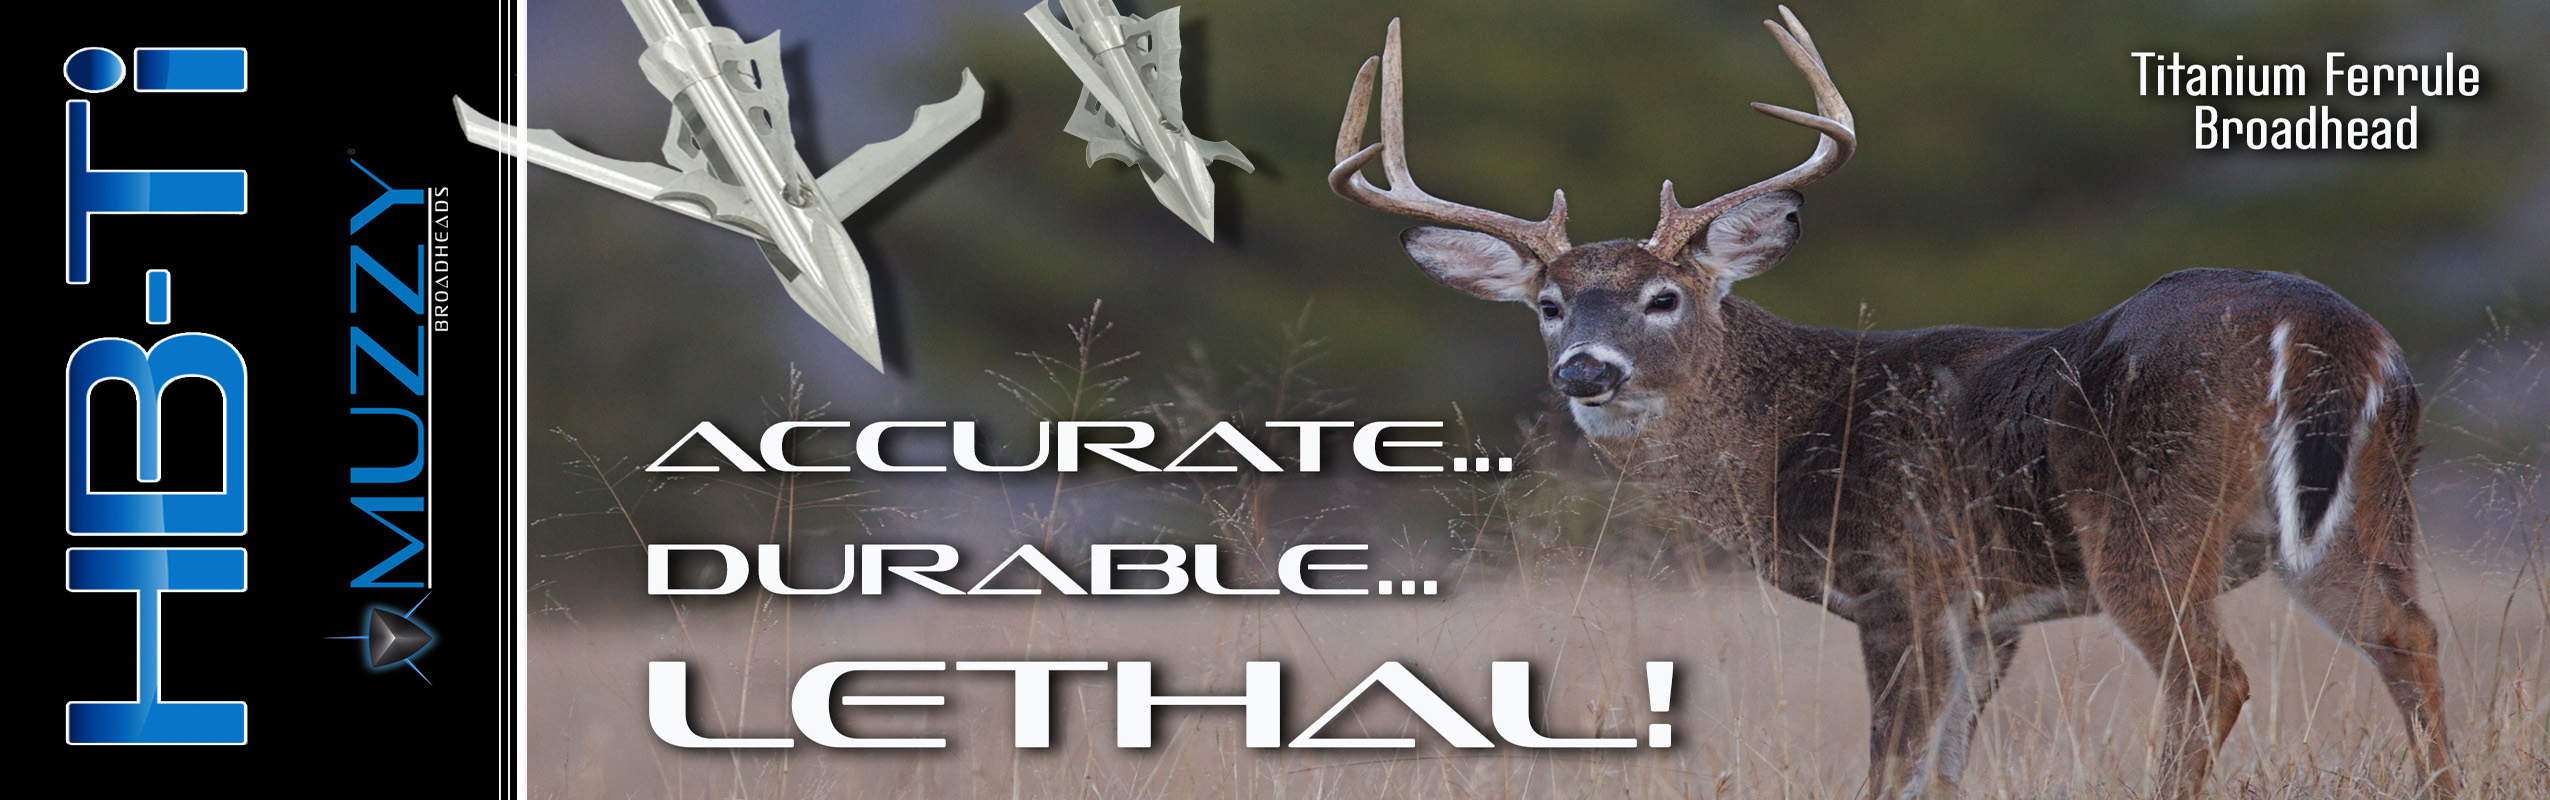 muzzy-hb-ti-broadhead-with-deer.jpg